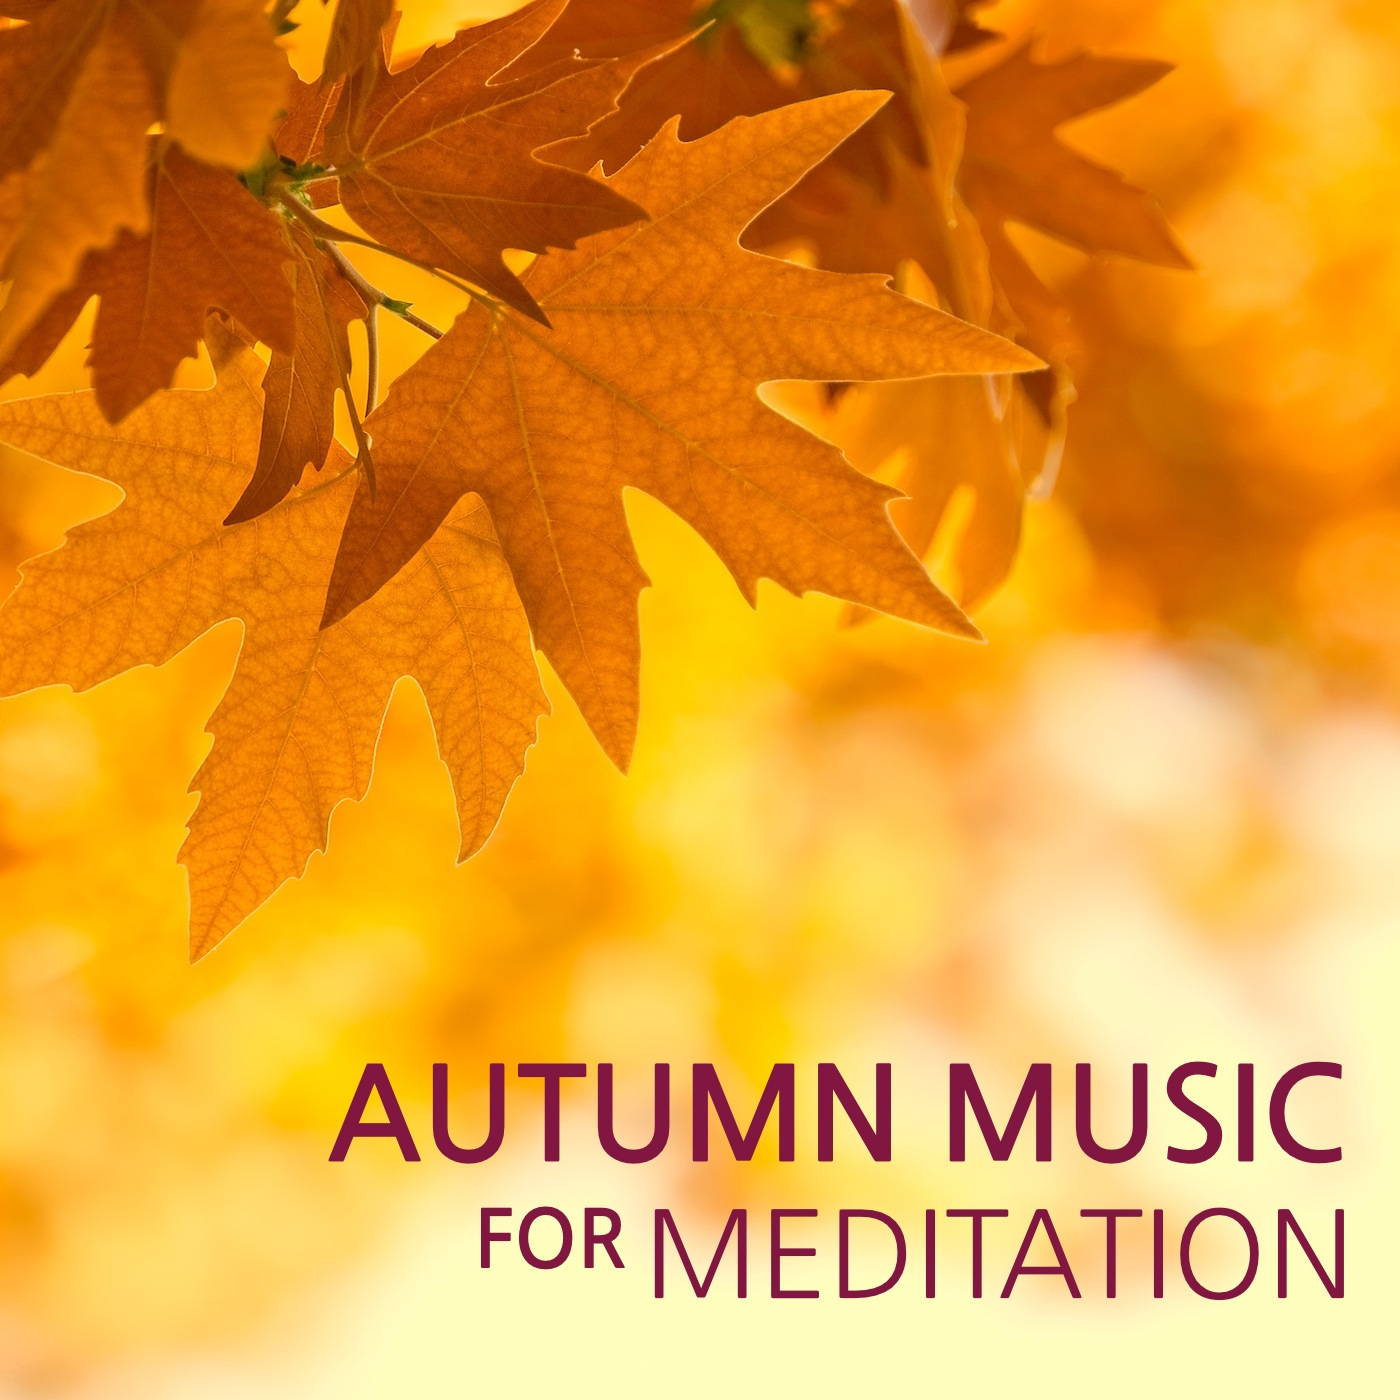 Top Relaxing Music Playlist: Best Relaxation Songs November 2014